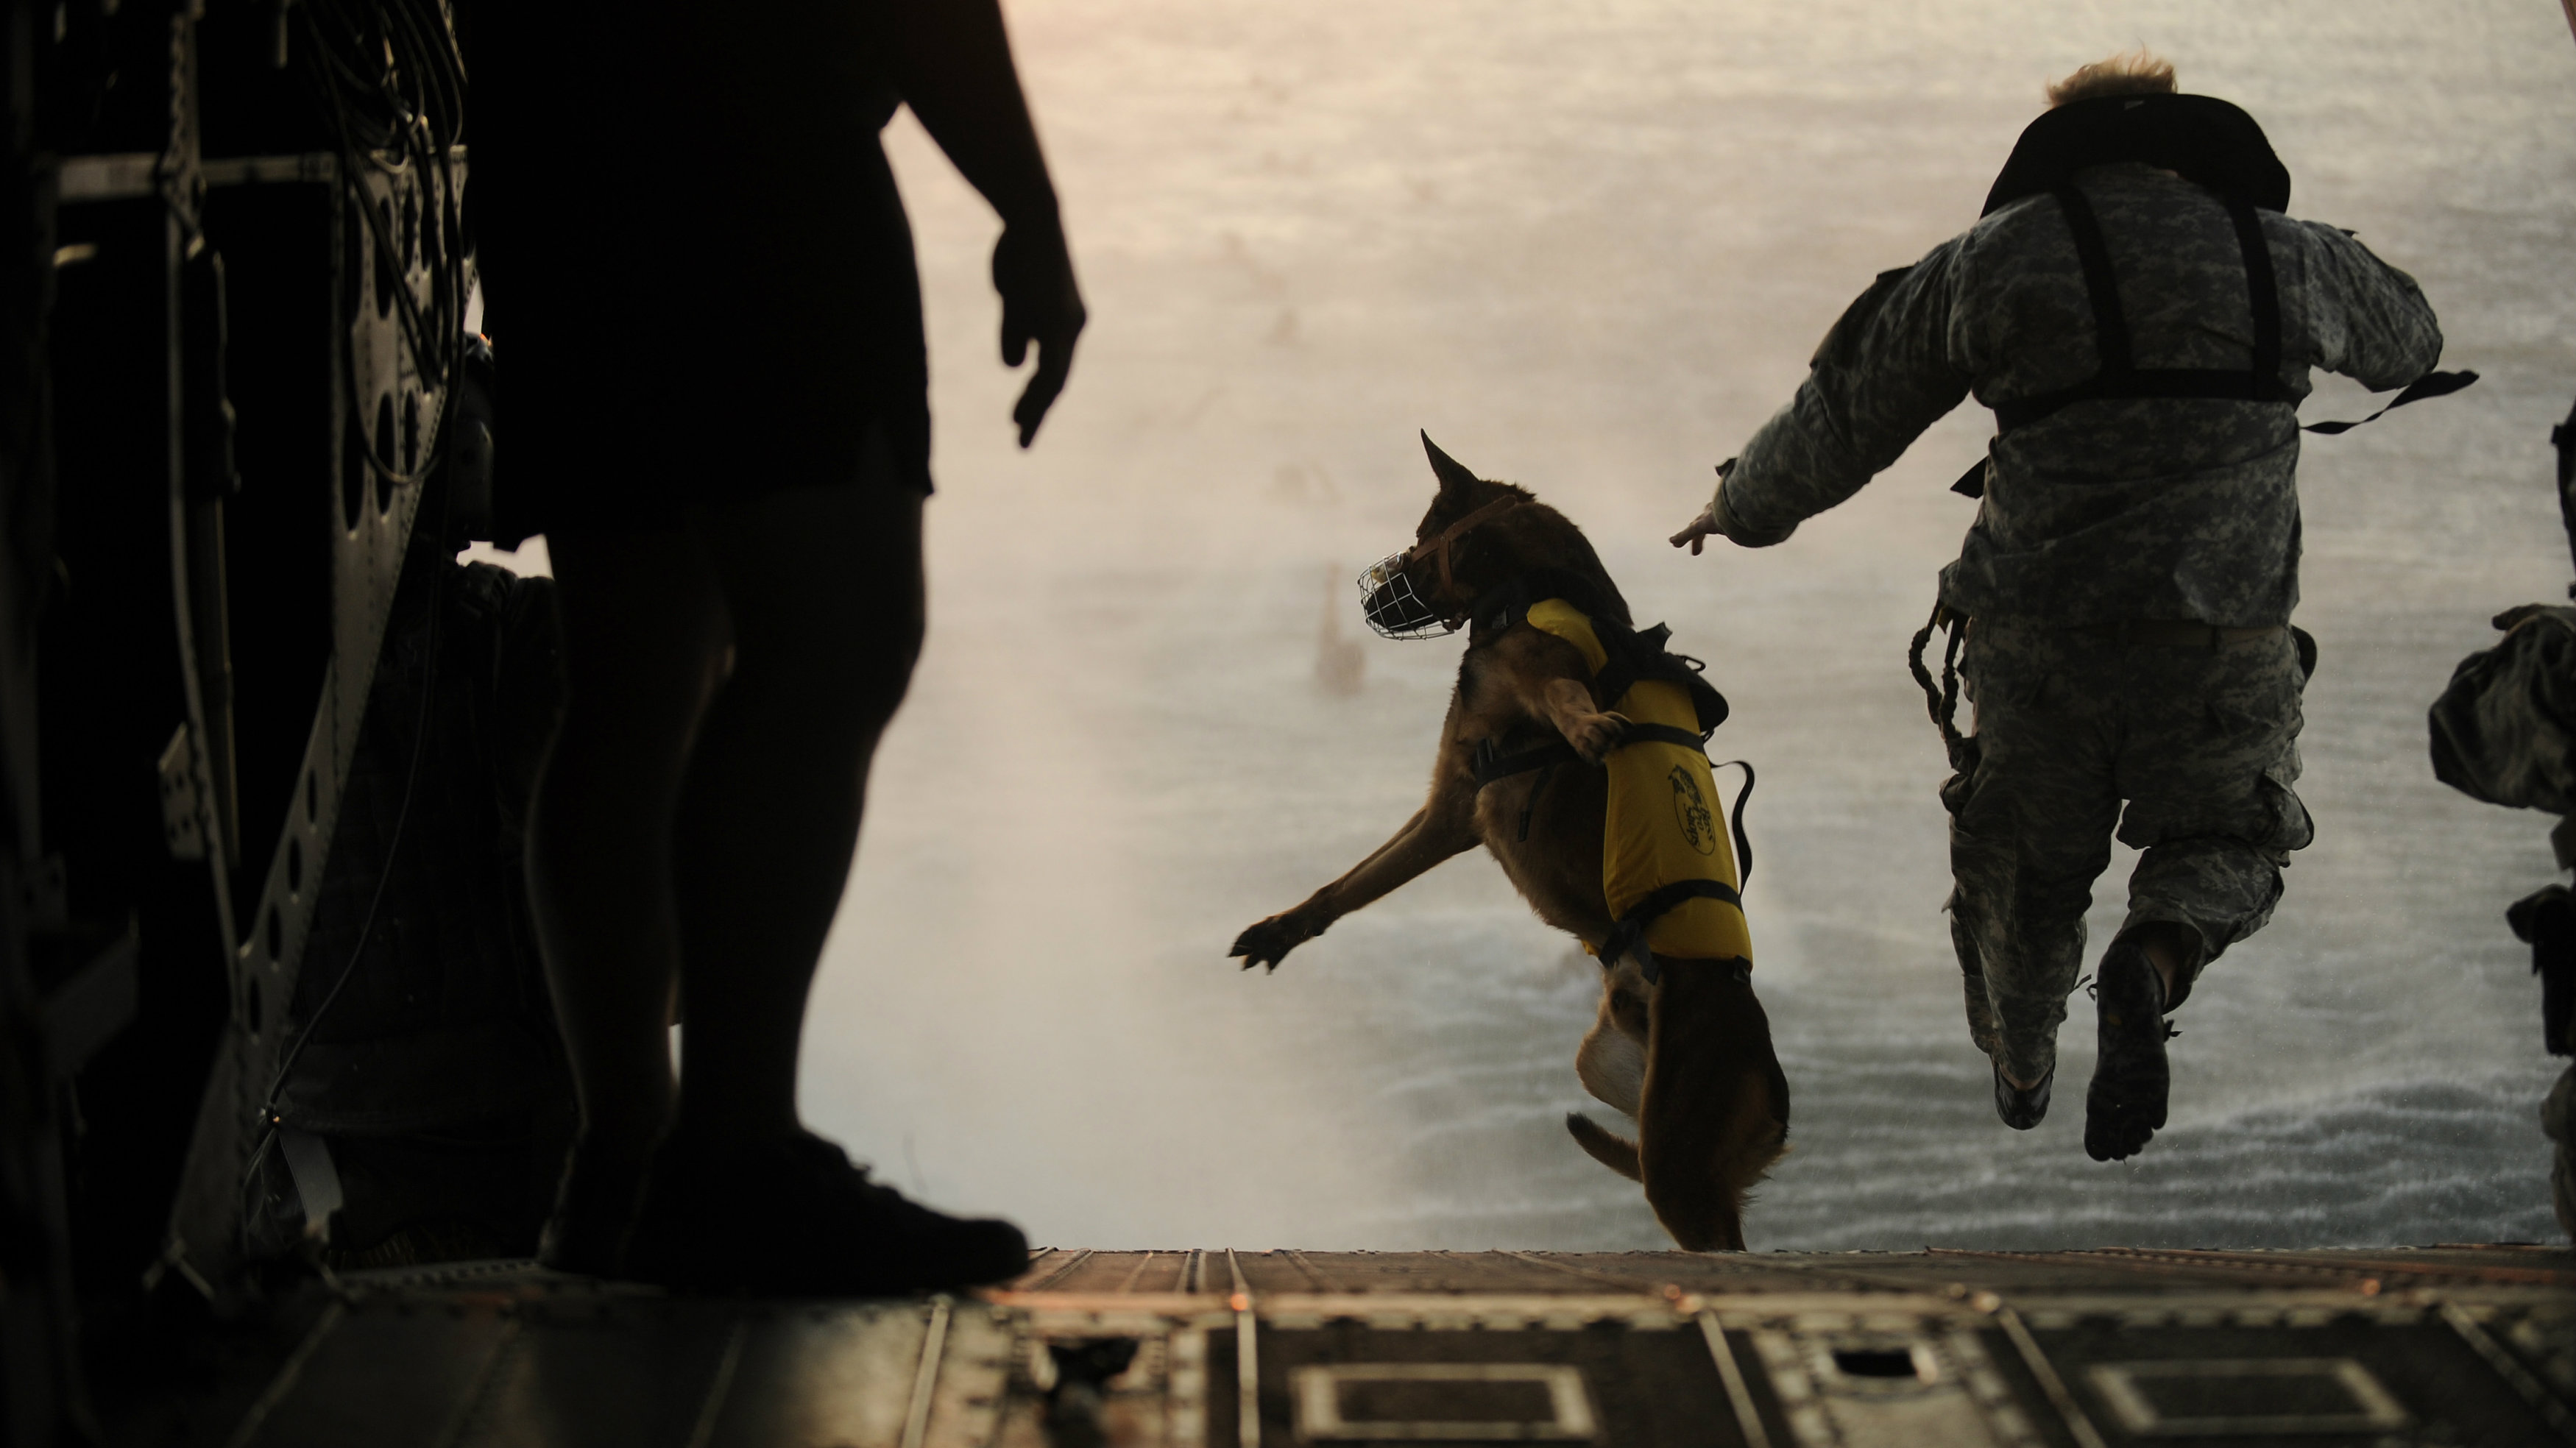 US Navy SEALs develop mental toughness by reinforcing one